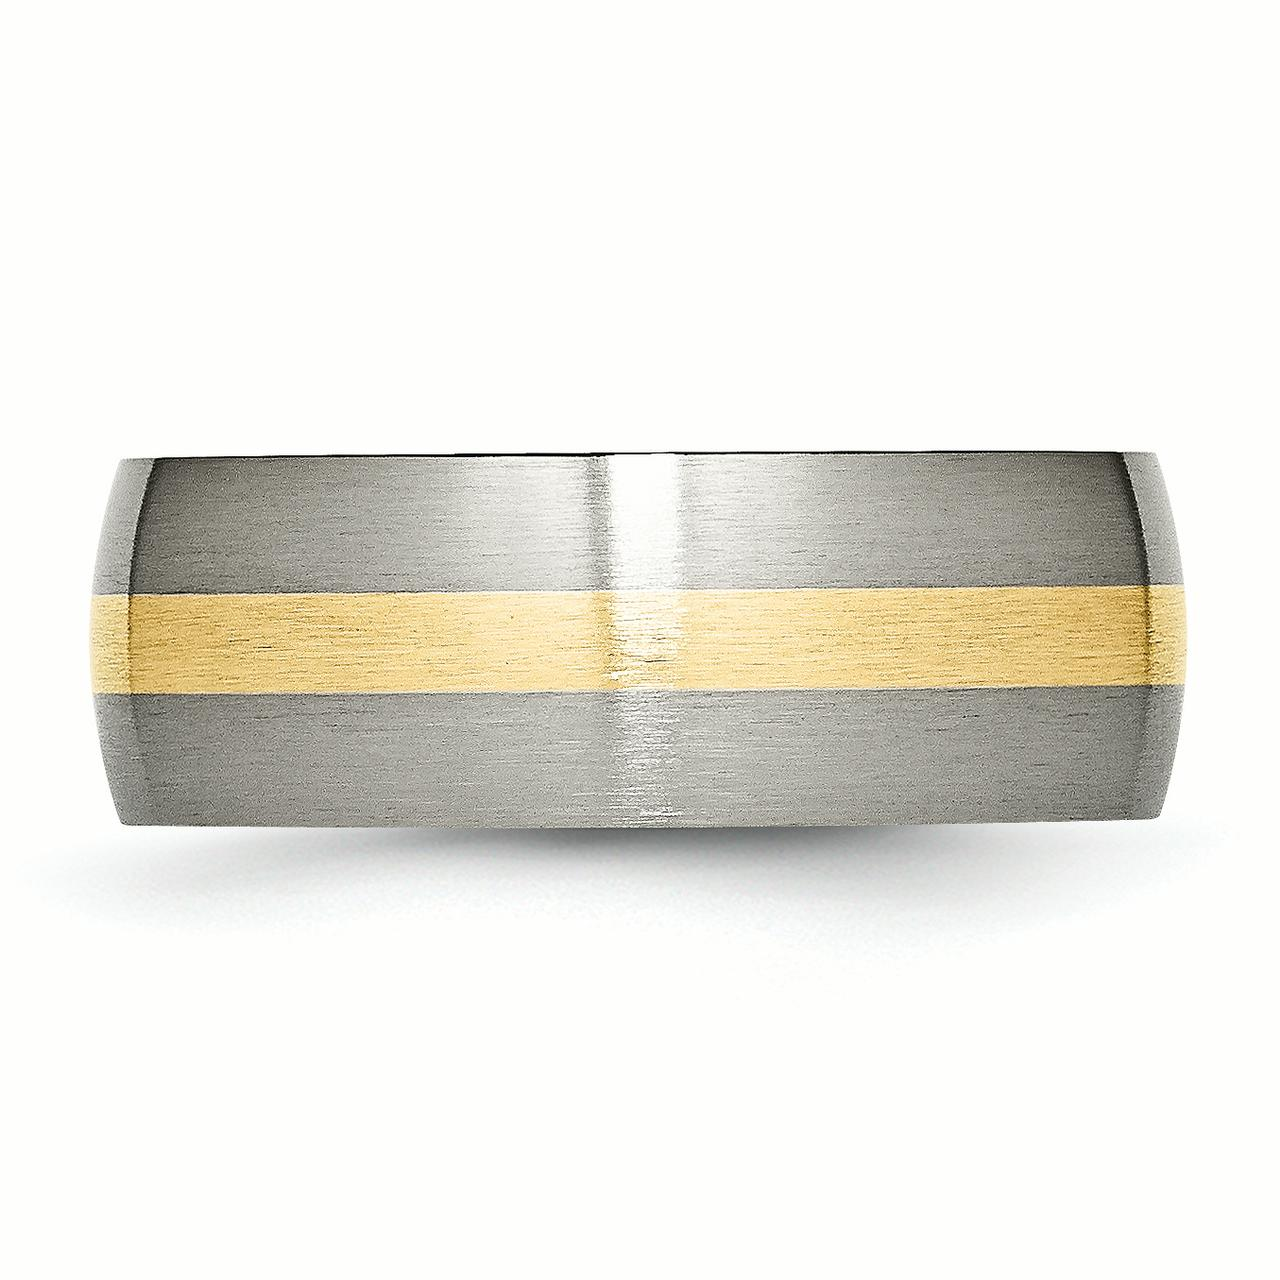 Titanium 14k Yellow Inlay 8mm Brushed Wedding Ring Band Size 8.50 Precious Metal Fine Jewelry Gifts For Women For Her - image 3 de 6